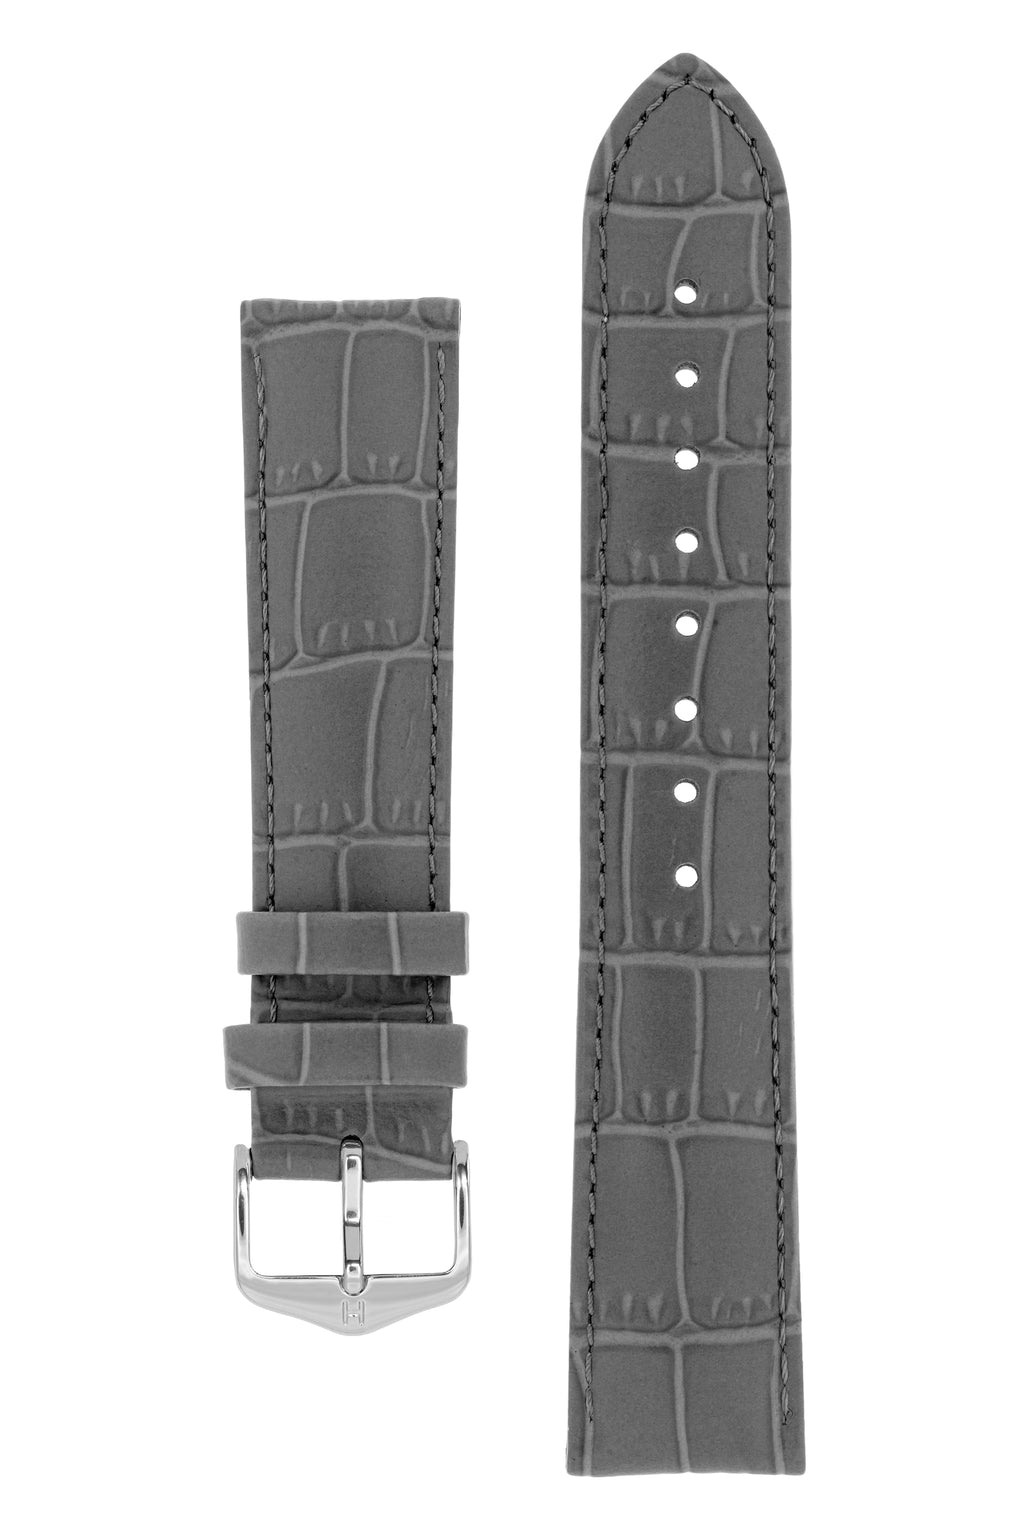 Hirsch LOUISIANALOOK Alligator Embossed Leather Watch Strap in GREY